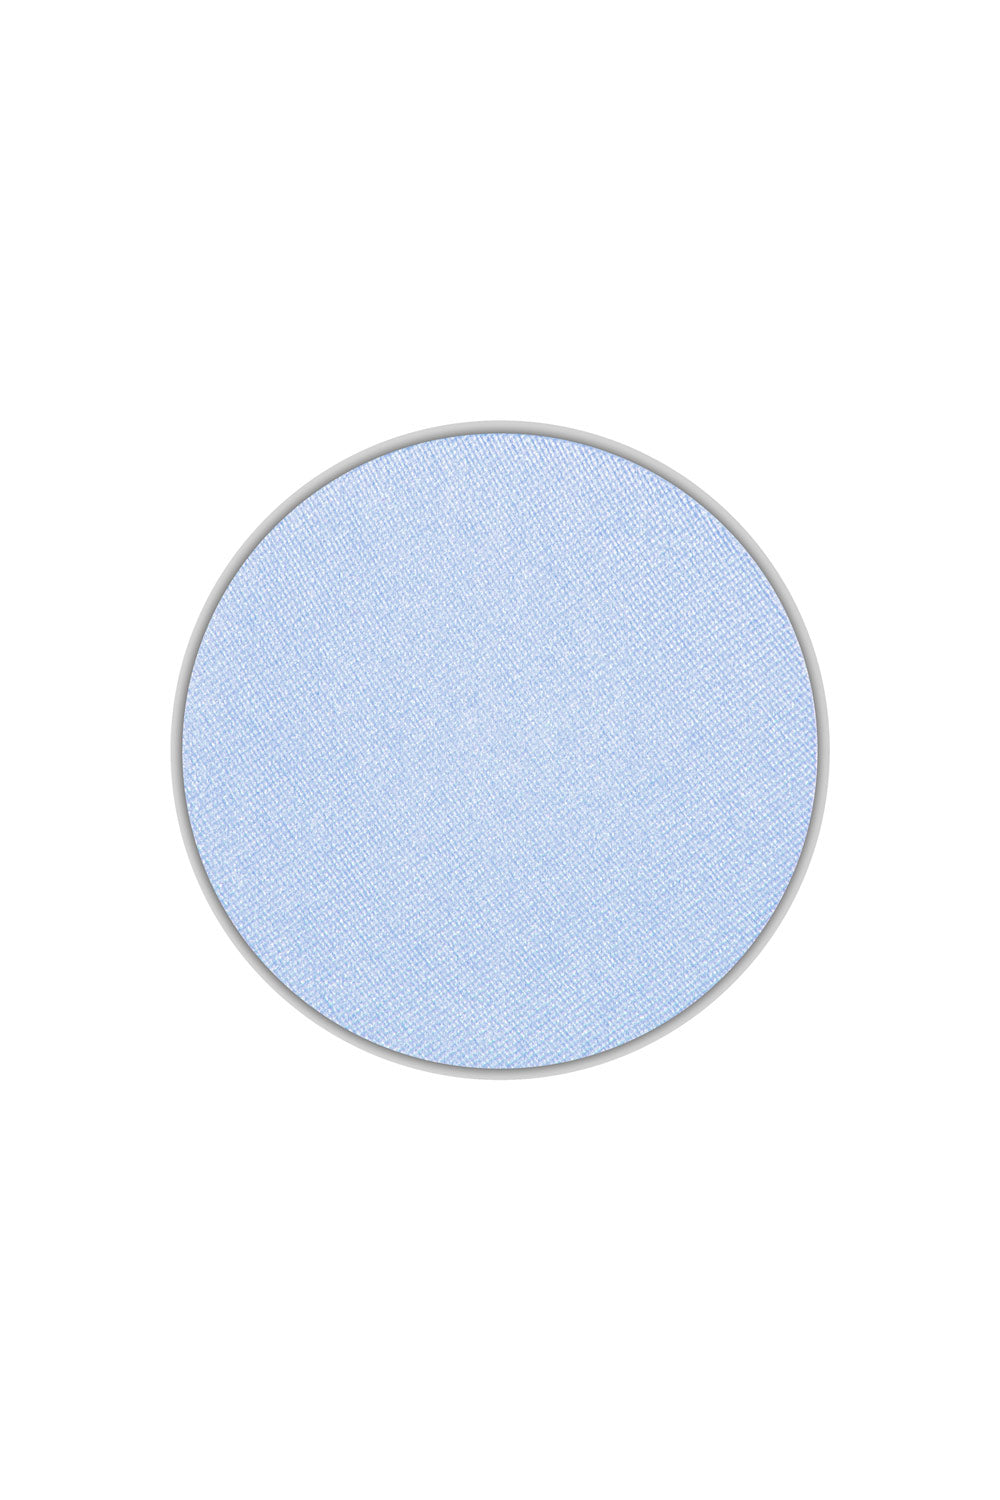 Blue Velvet - Type 4 Eyeshadow Pan